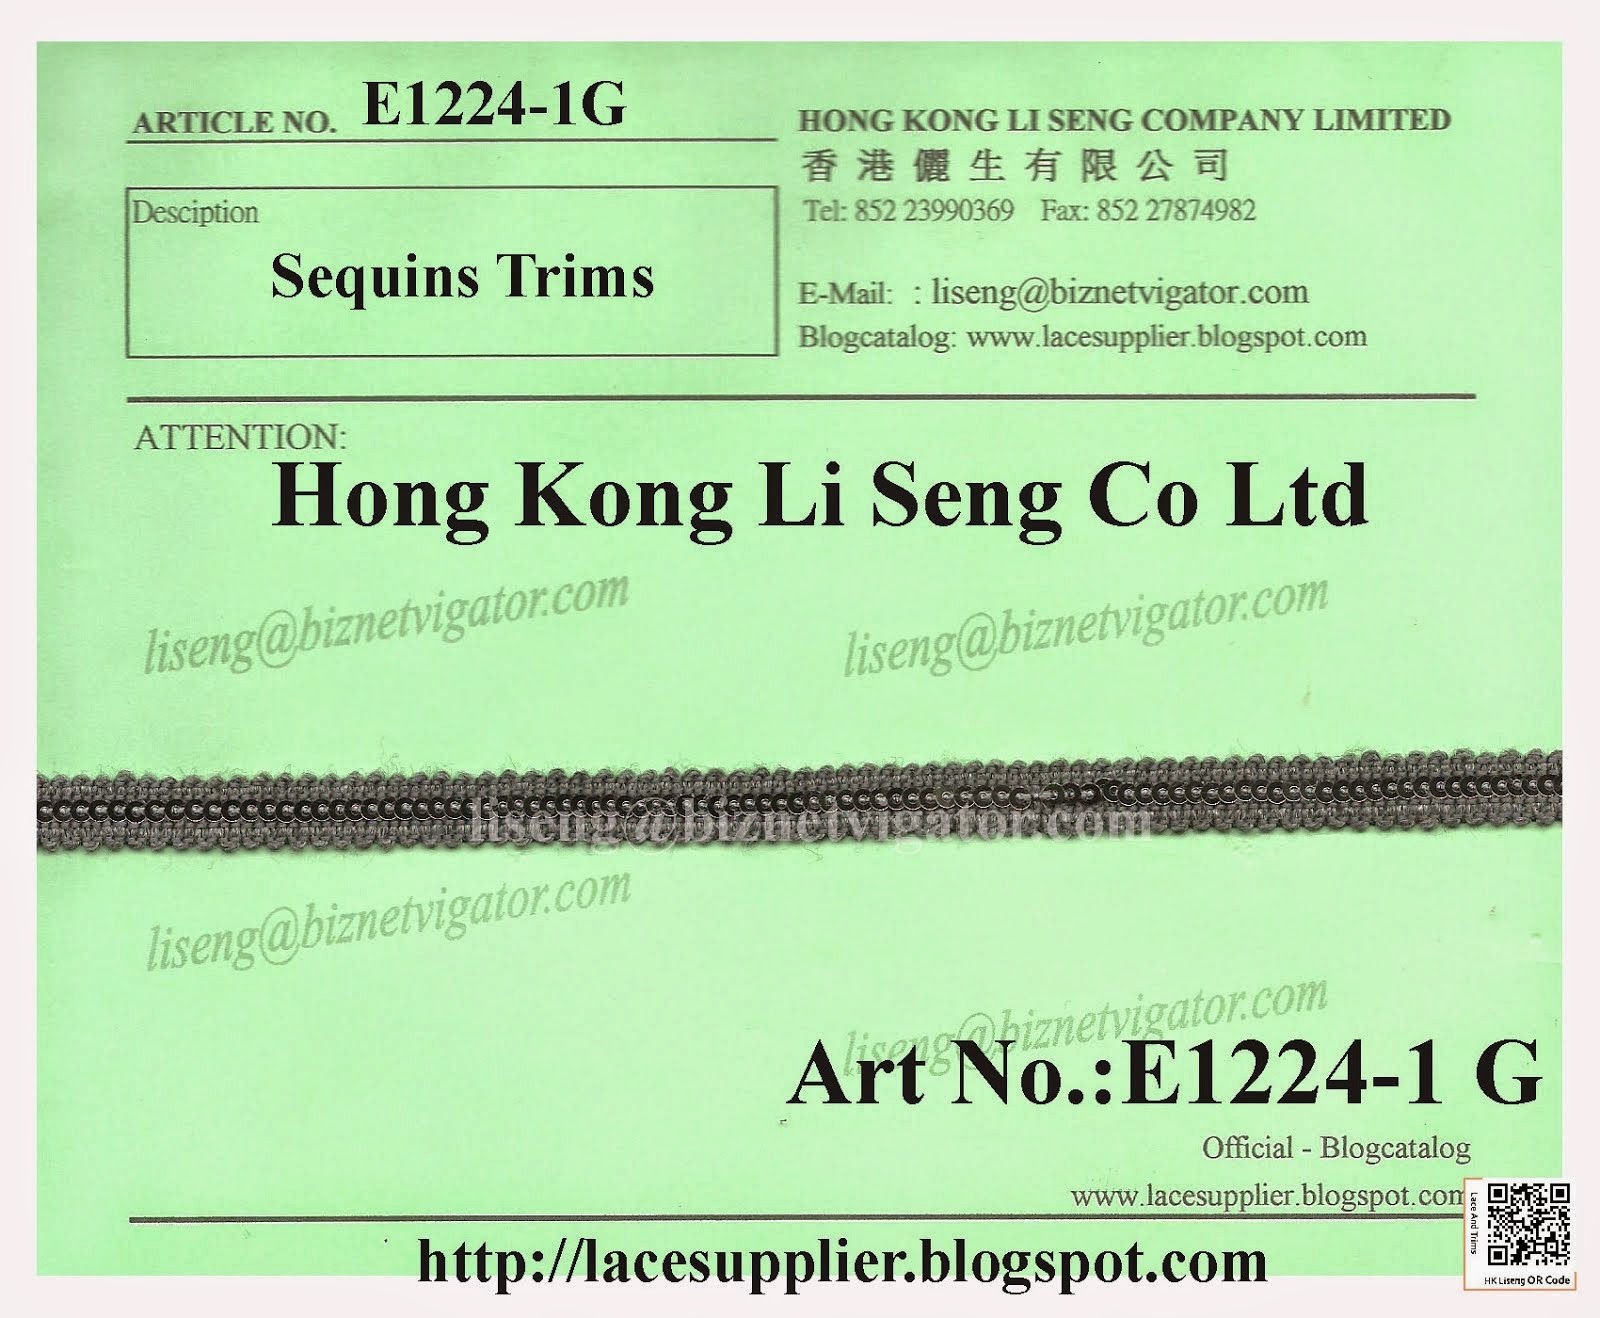 Beads and Trims Manufacturer Wholesale Supplier - Hong Kong Li Seng Co Ltd